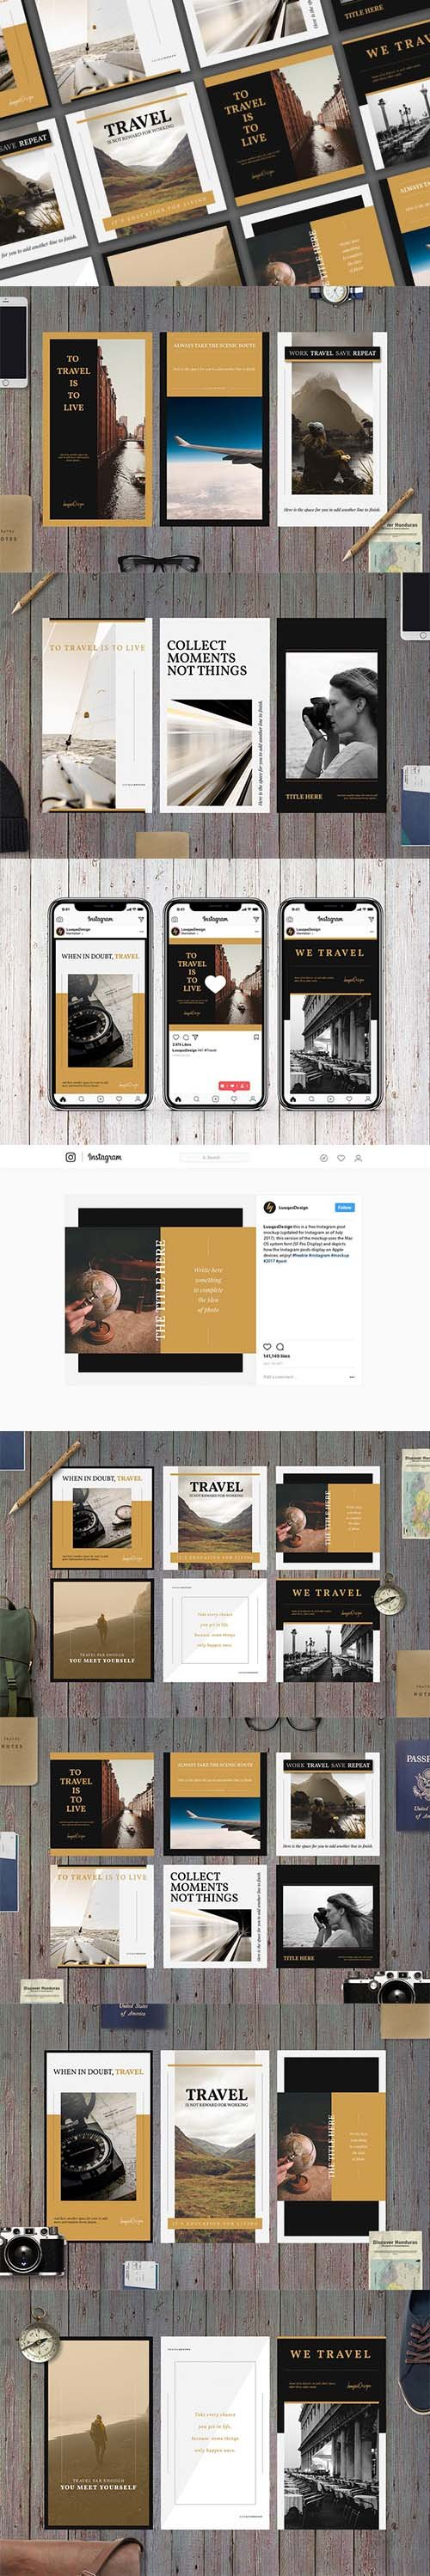 Travel Social Media Template Pack